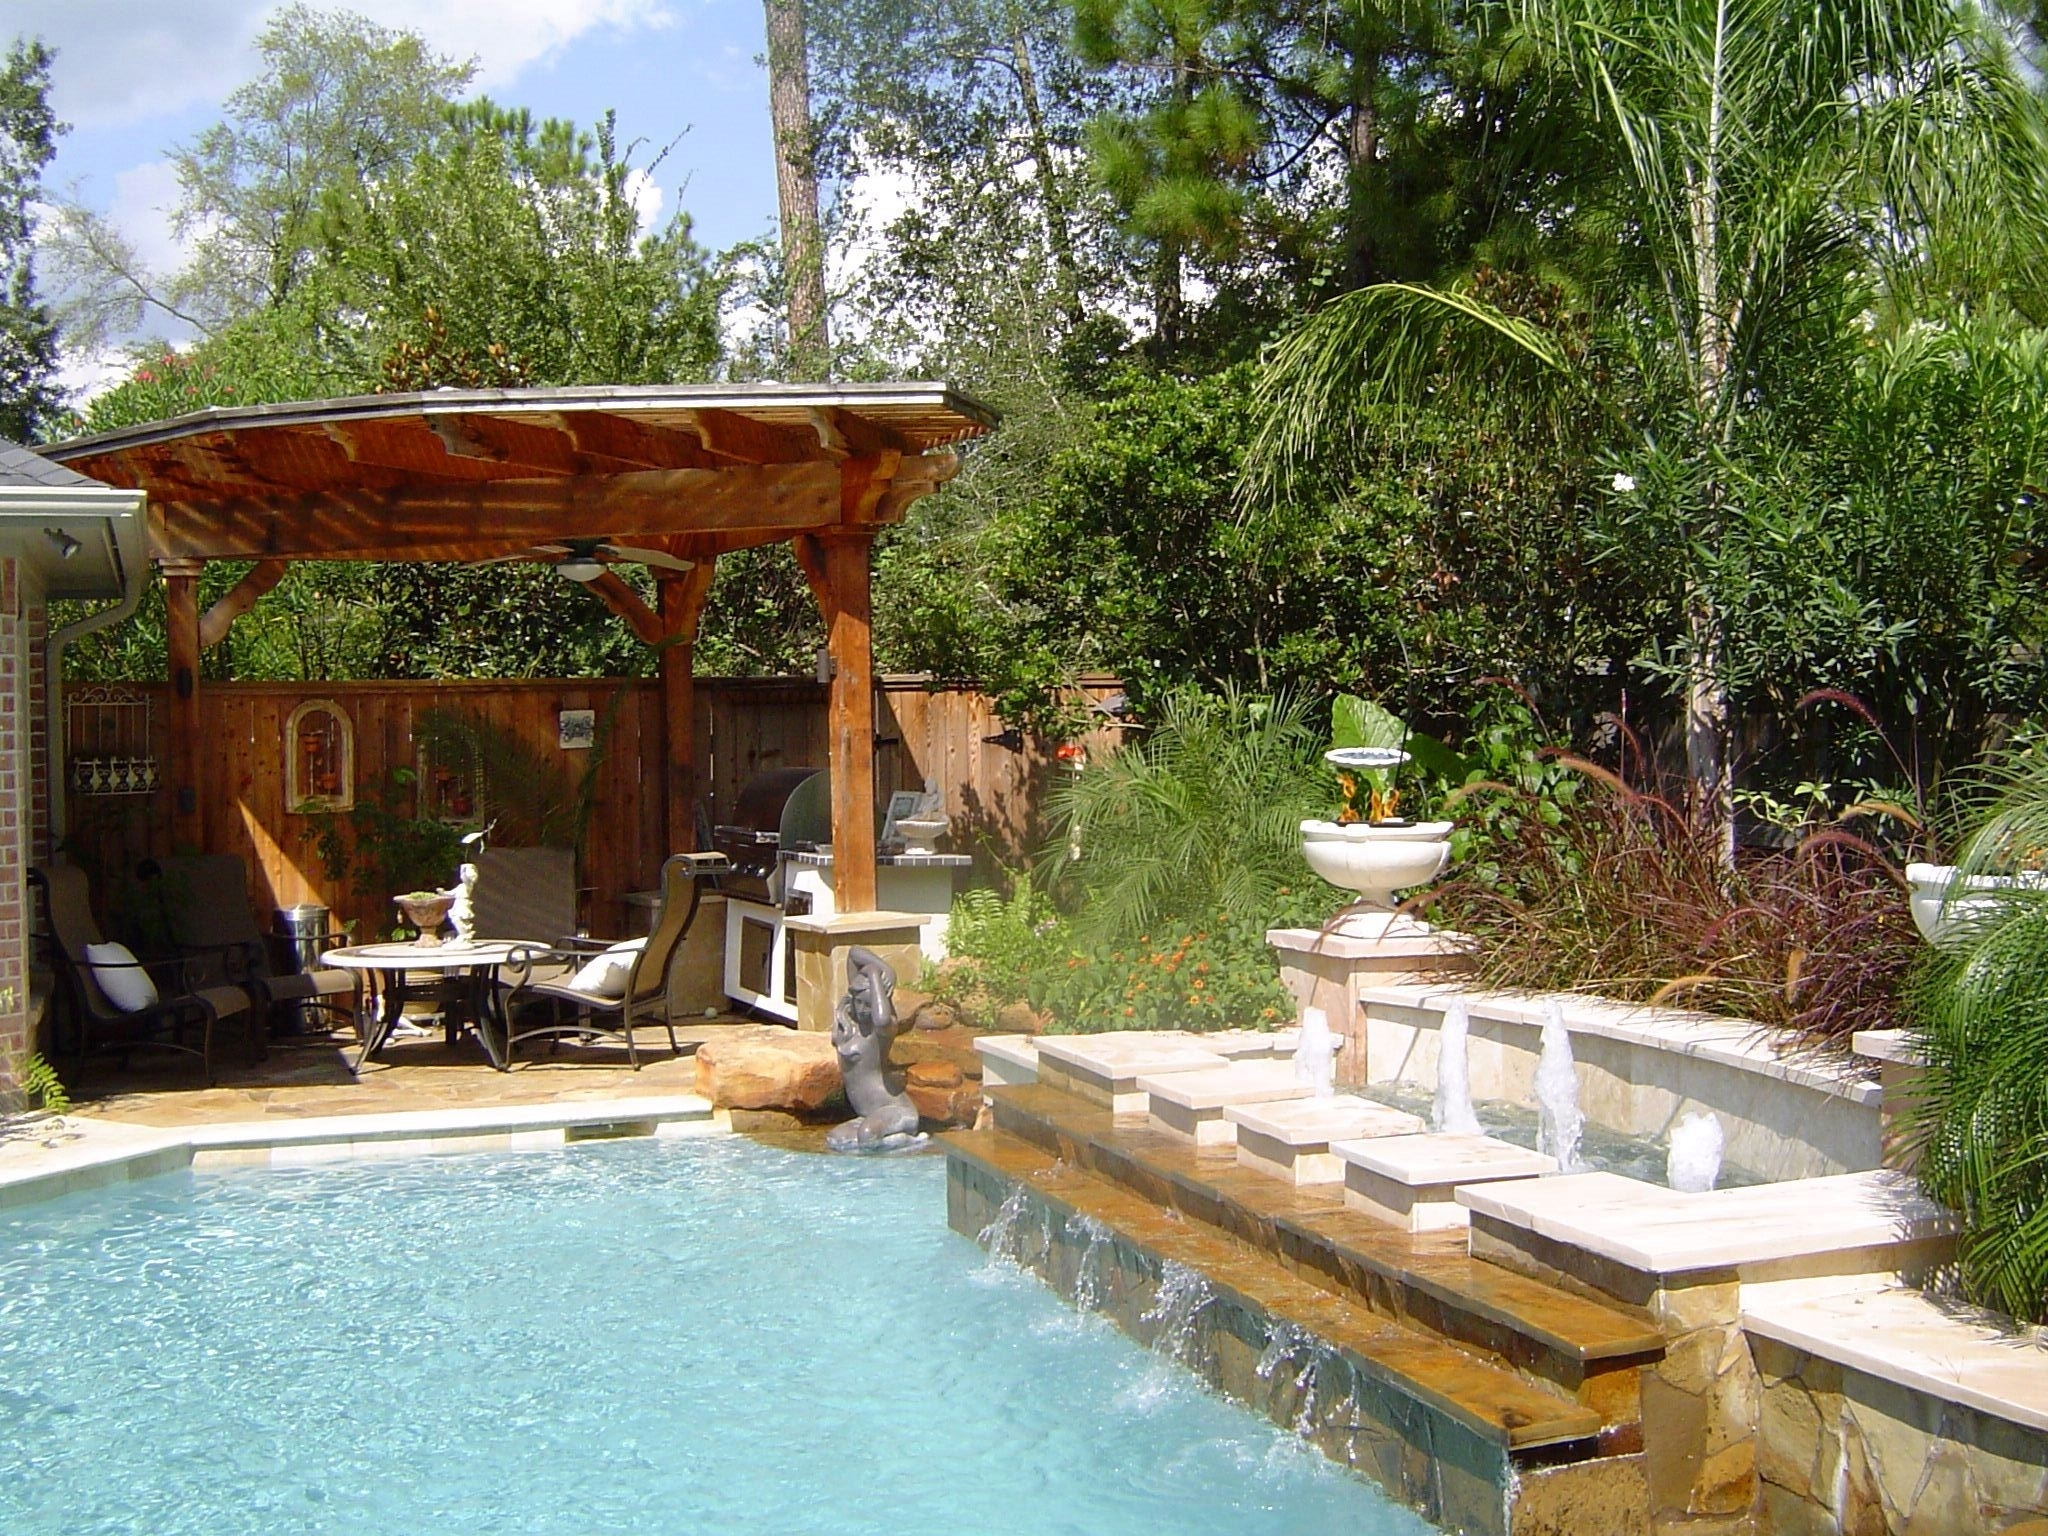 My Backyard Ideas With Small Backyard Layout Ideas Lawn Garden with Best Layout For Woodland Garden Apartments Design Ideas